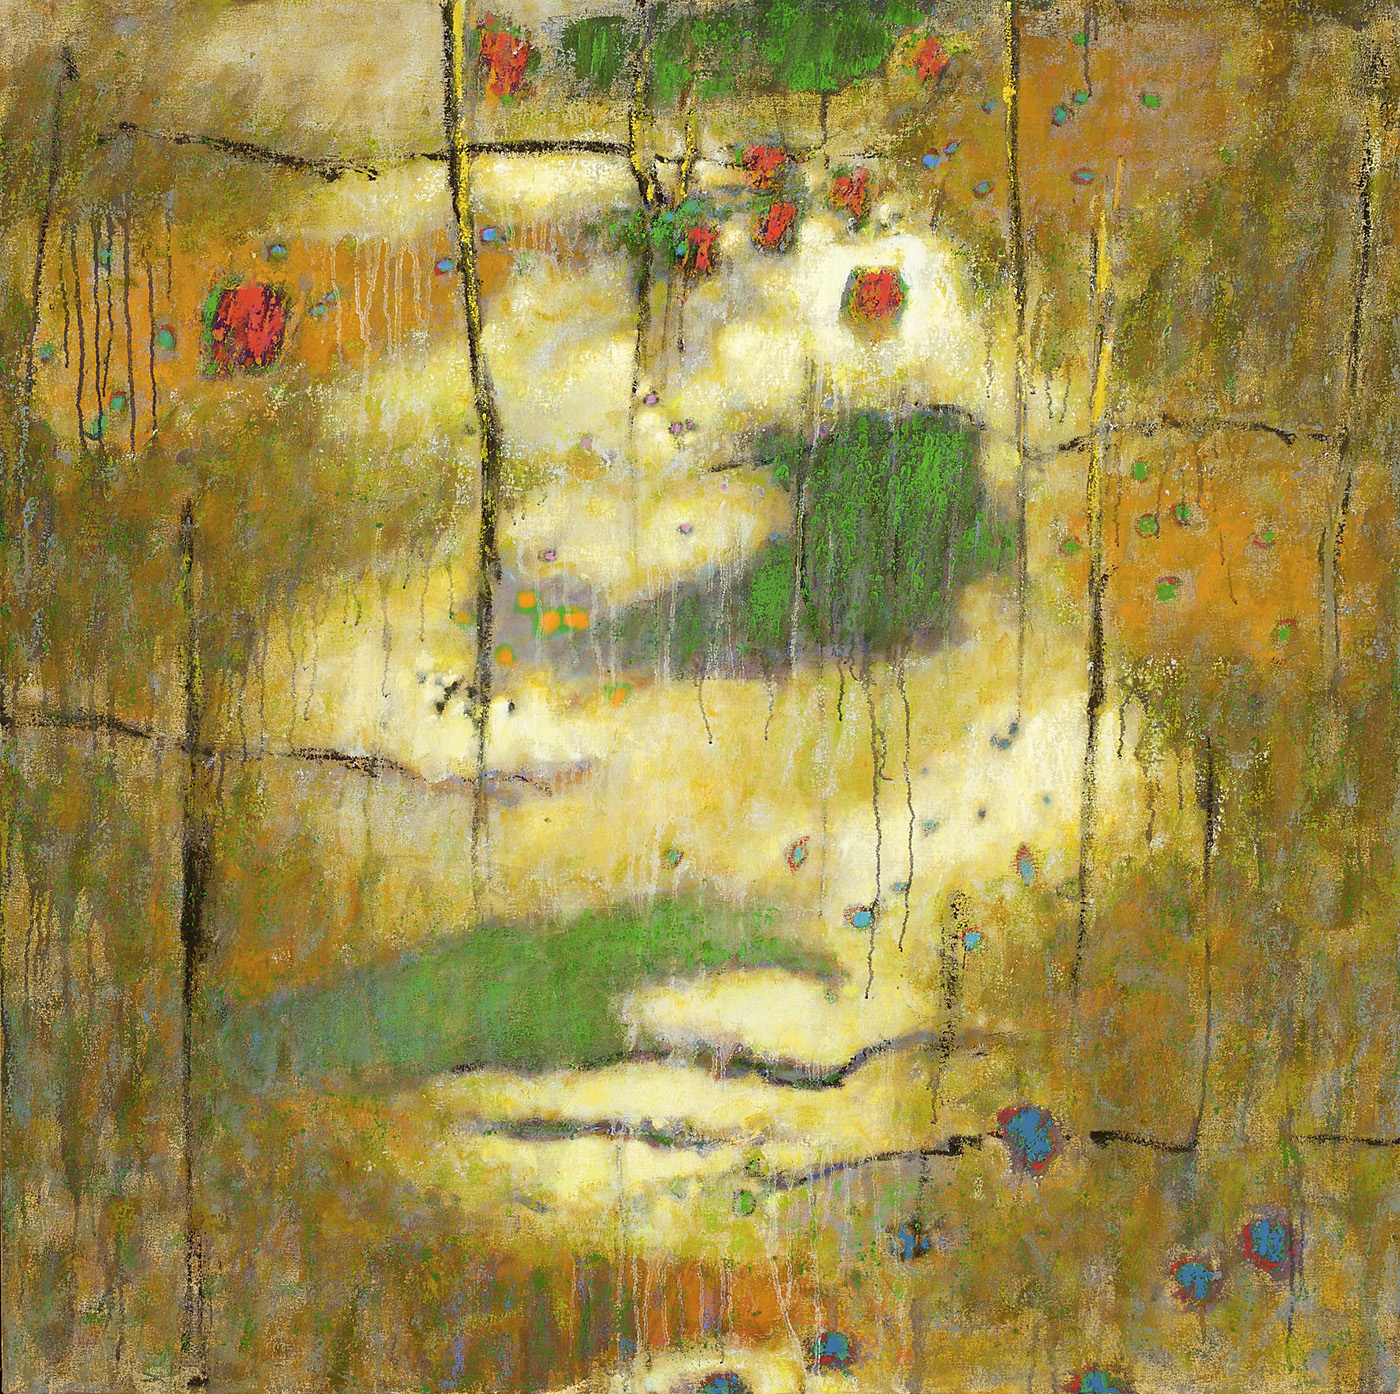 Inside | oil on canvas | 48 x 48"